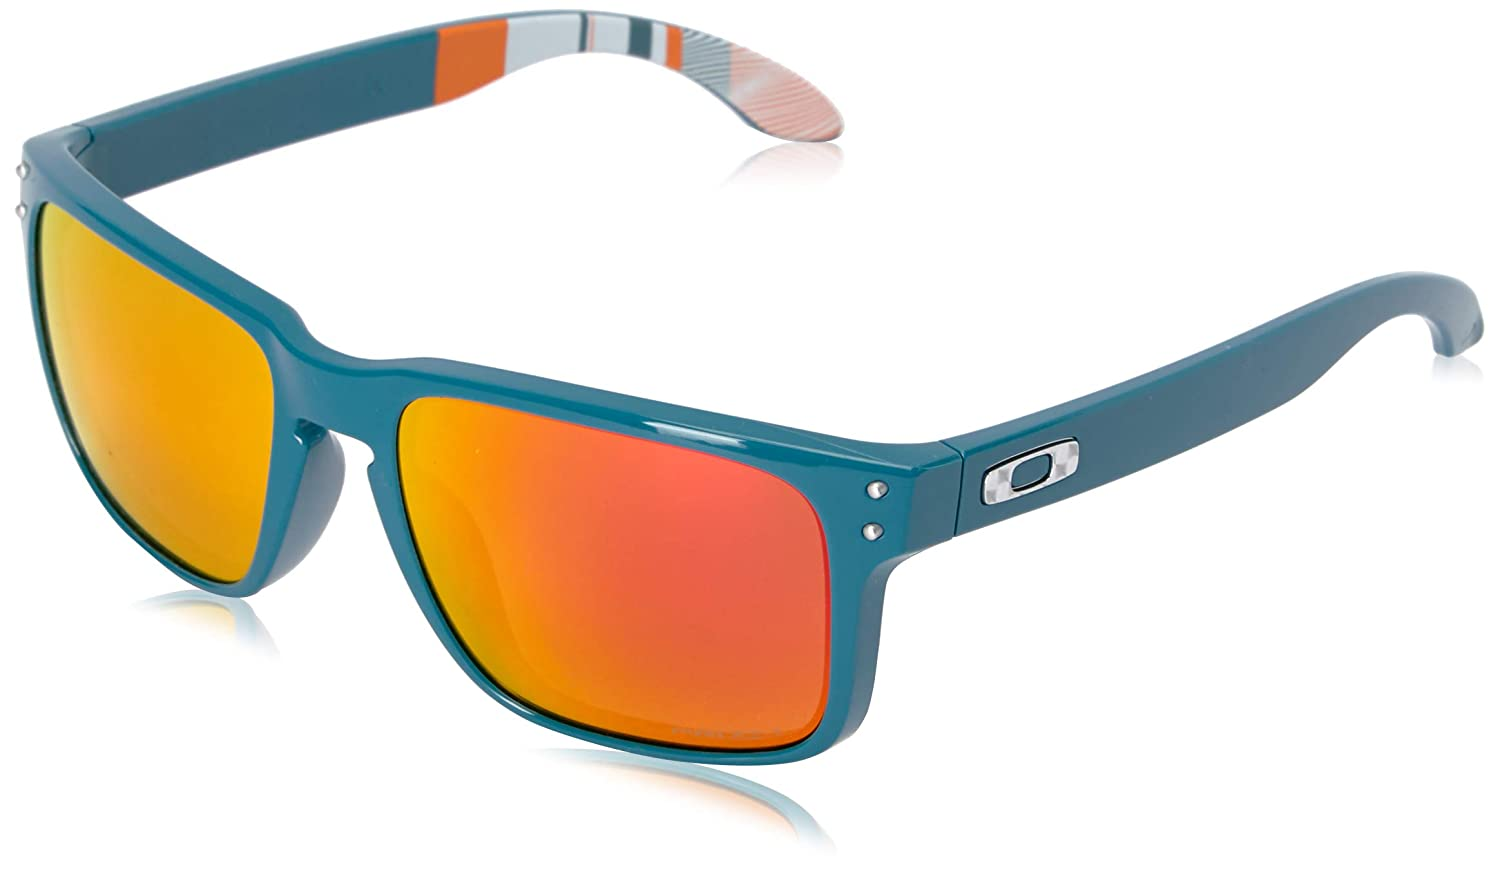 9647ec21a1b32 Amazon.com  Oakley Men s Holbrook Non-Polarized Iridium Square Sunglasses